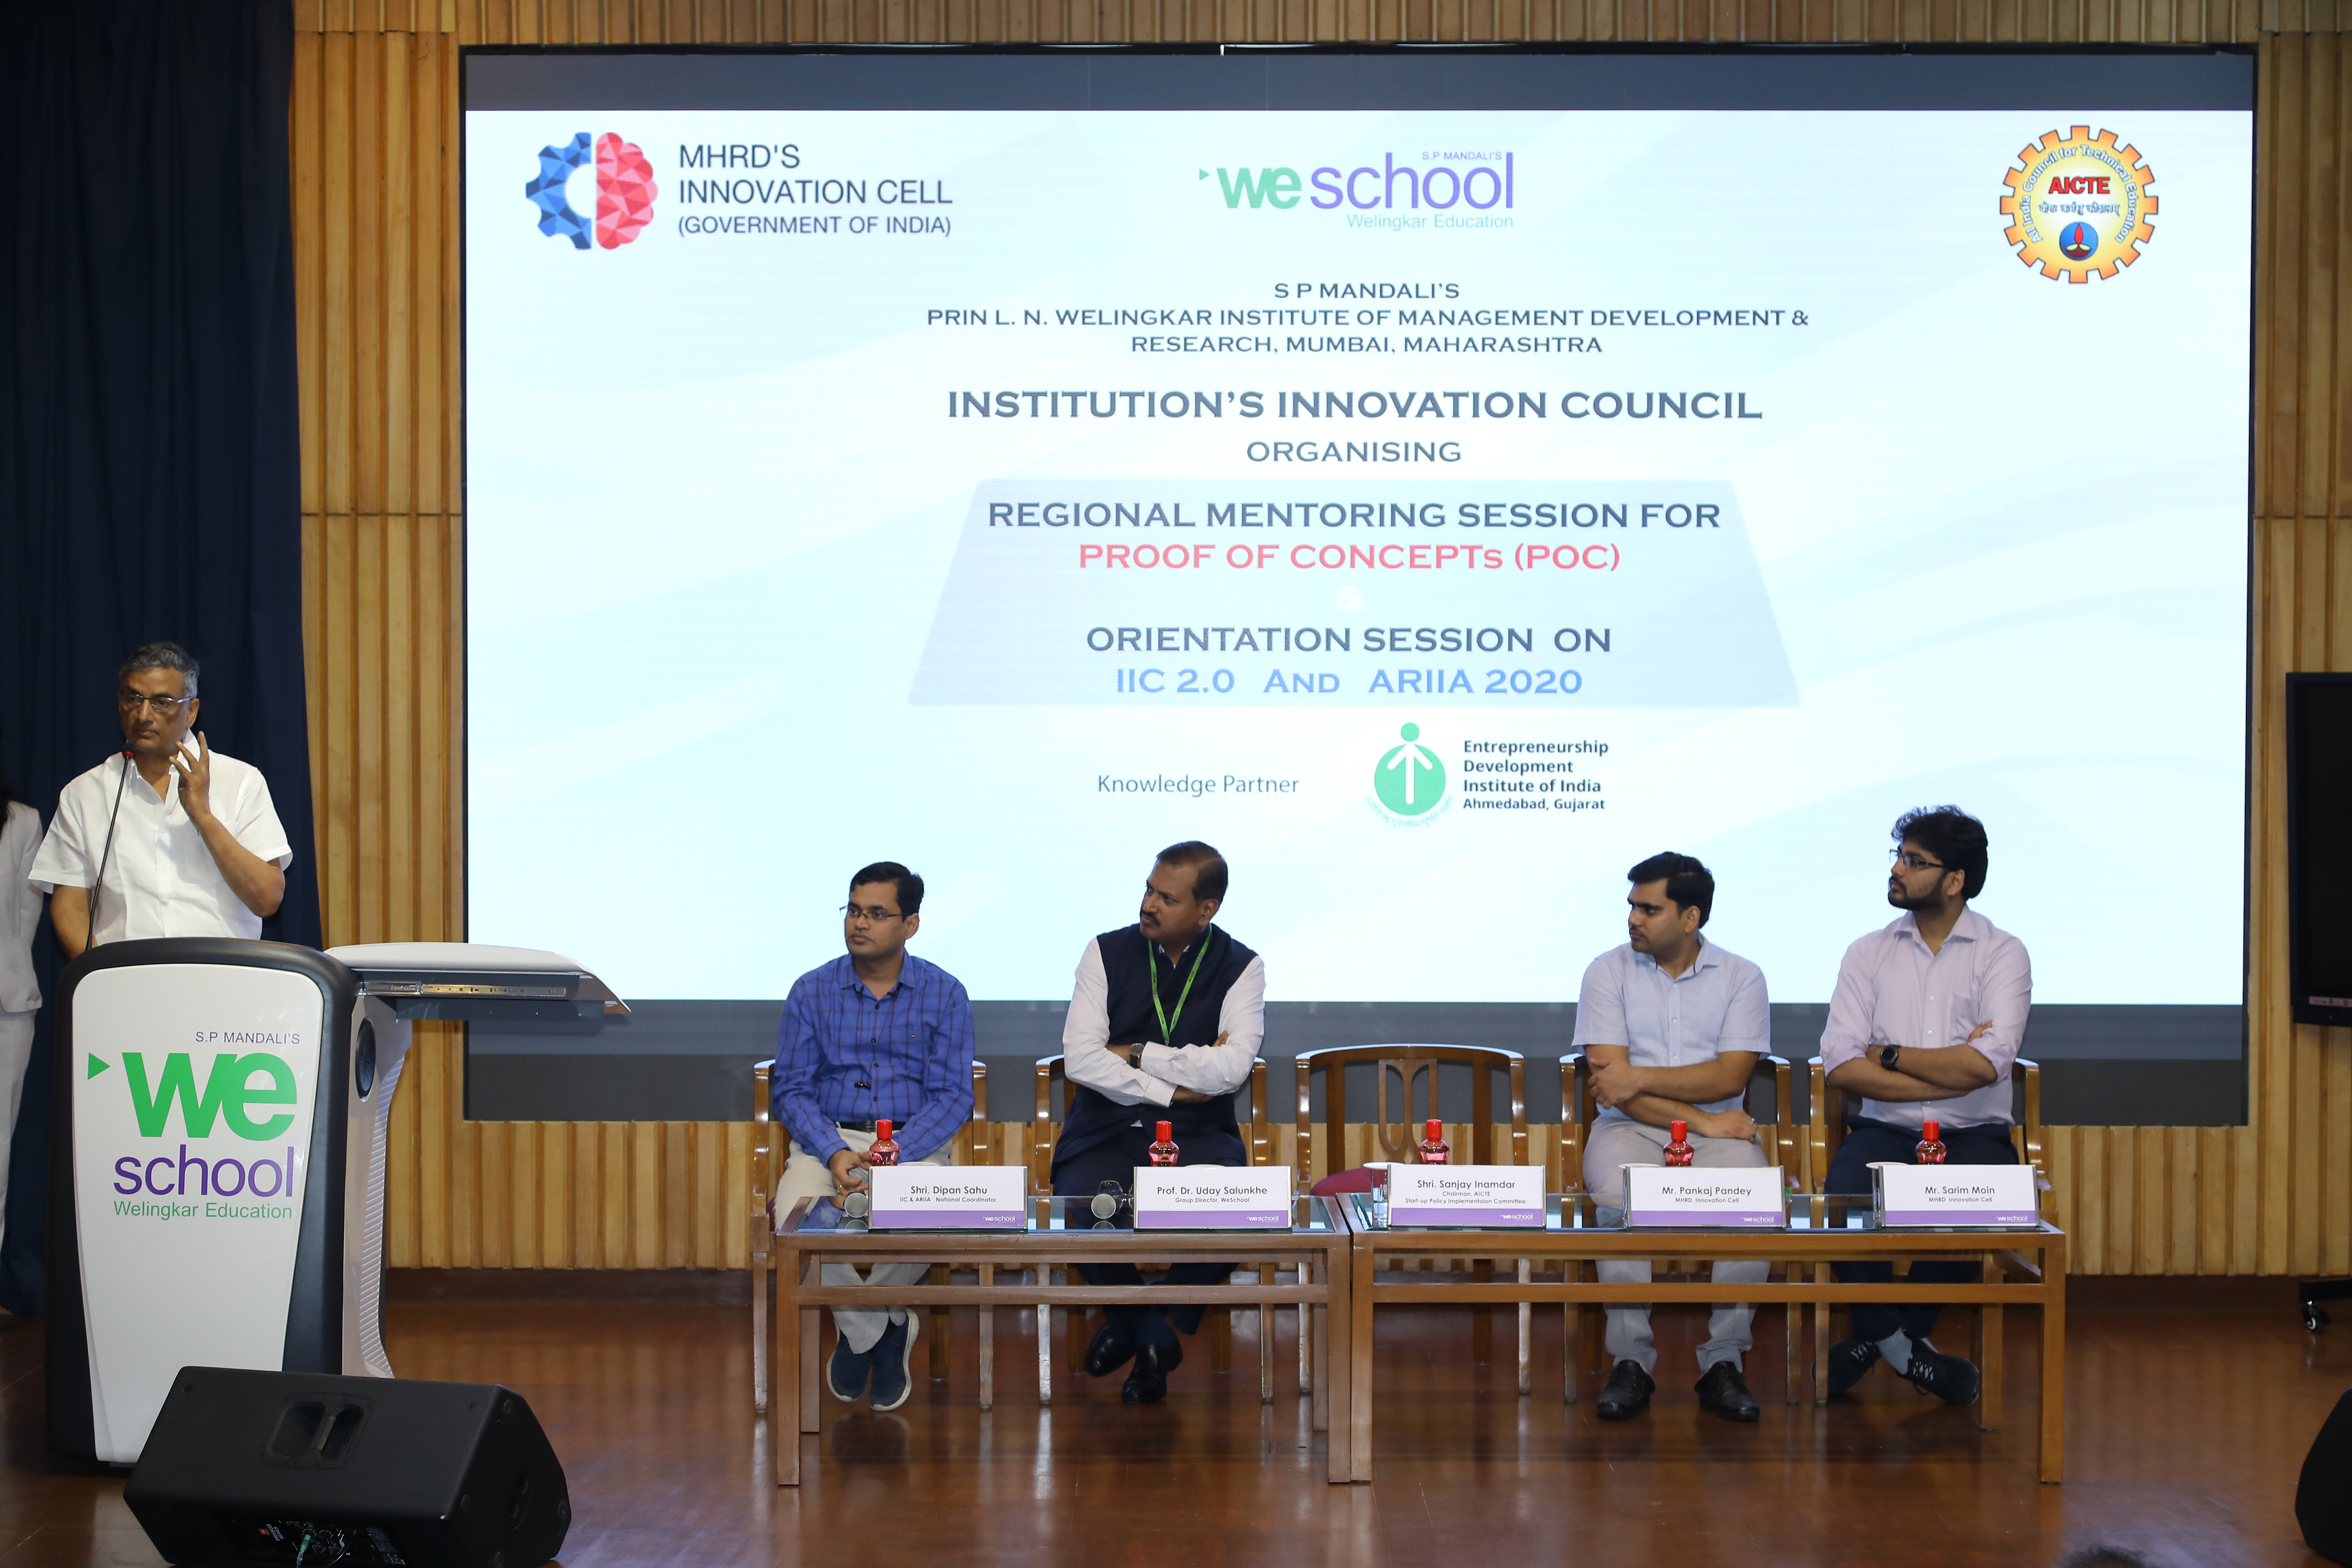 Young innovators from across 50 higher educational institutes mentored on S. P. Mandali's WeSchool campus in regional mentoring session for MHRD –IIC - Proof of Concepts (POC) alongside an orientation session on IIC 2.0 and (Atal Ranking of Institutions o